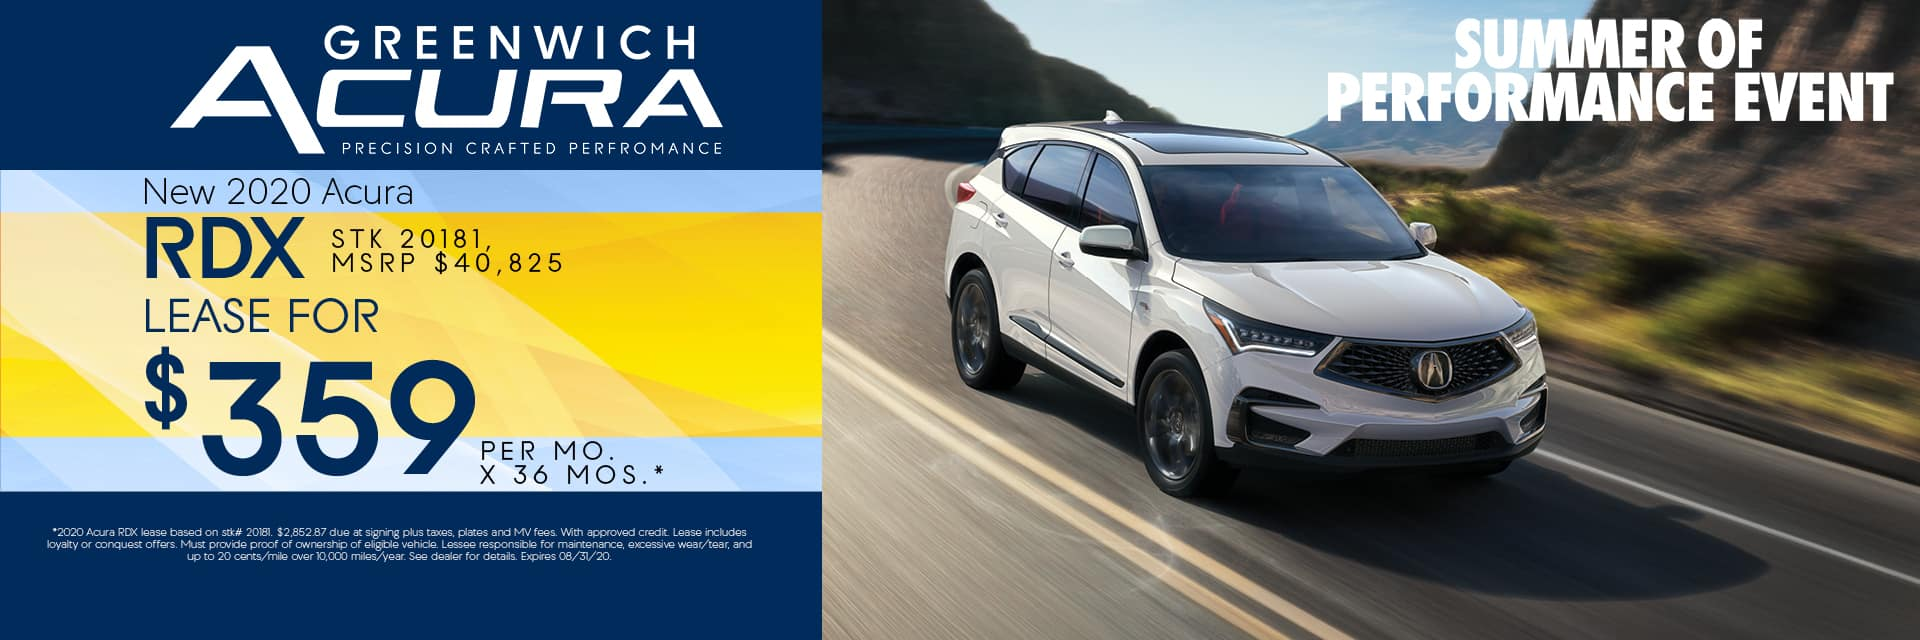 New 2020 Acura RDX Lease for $359 for 36mos. | Greenwich, CT